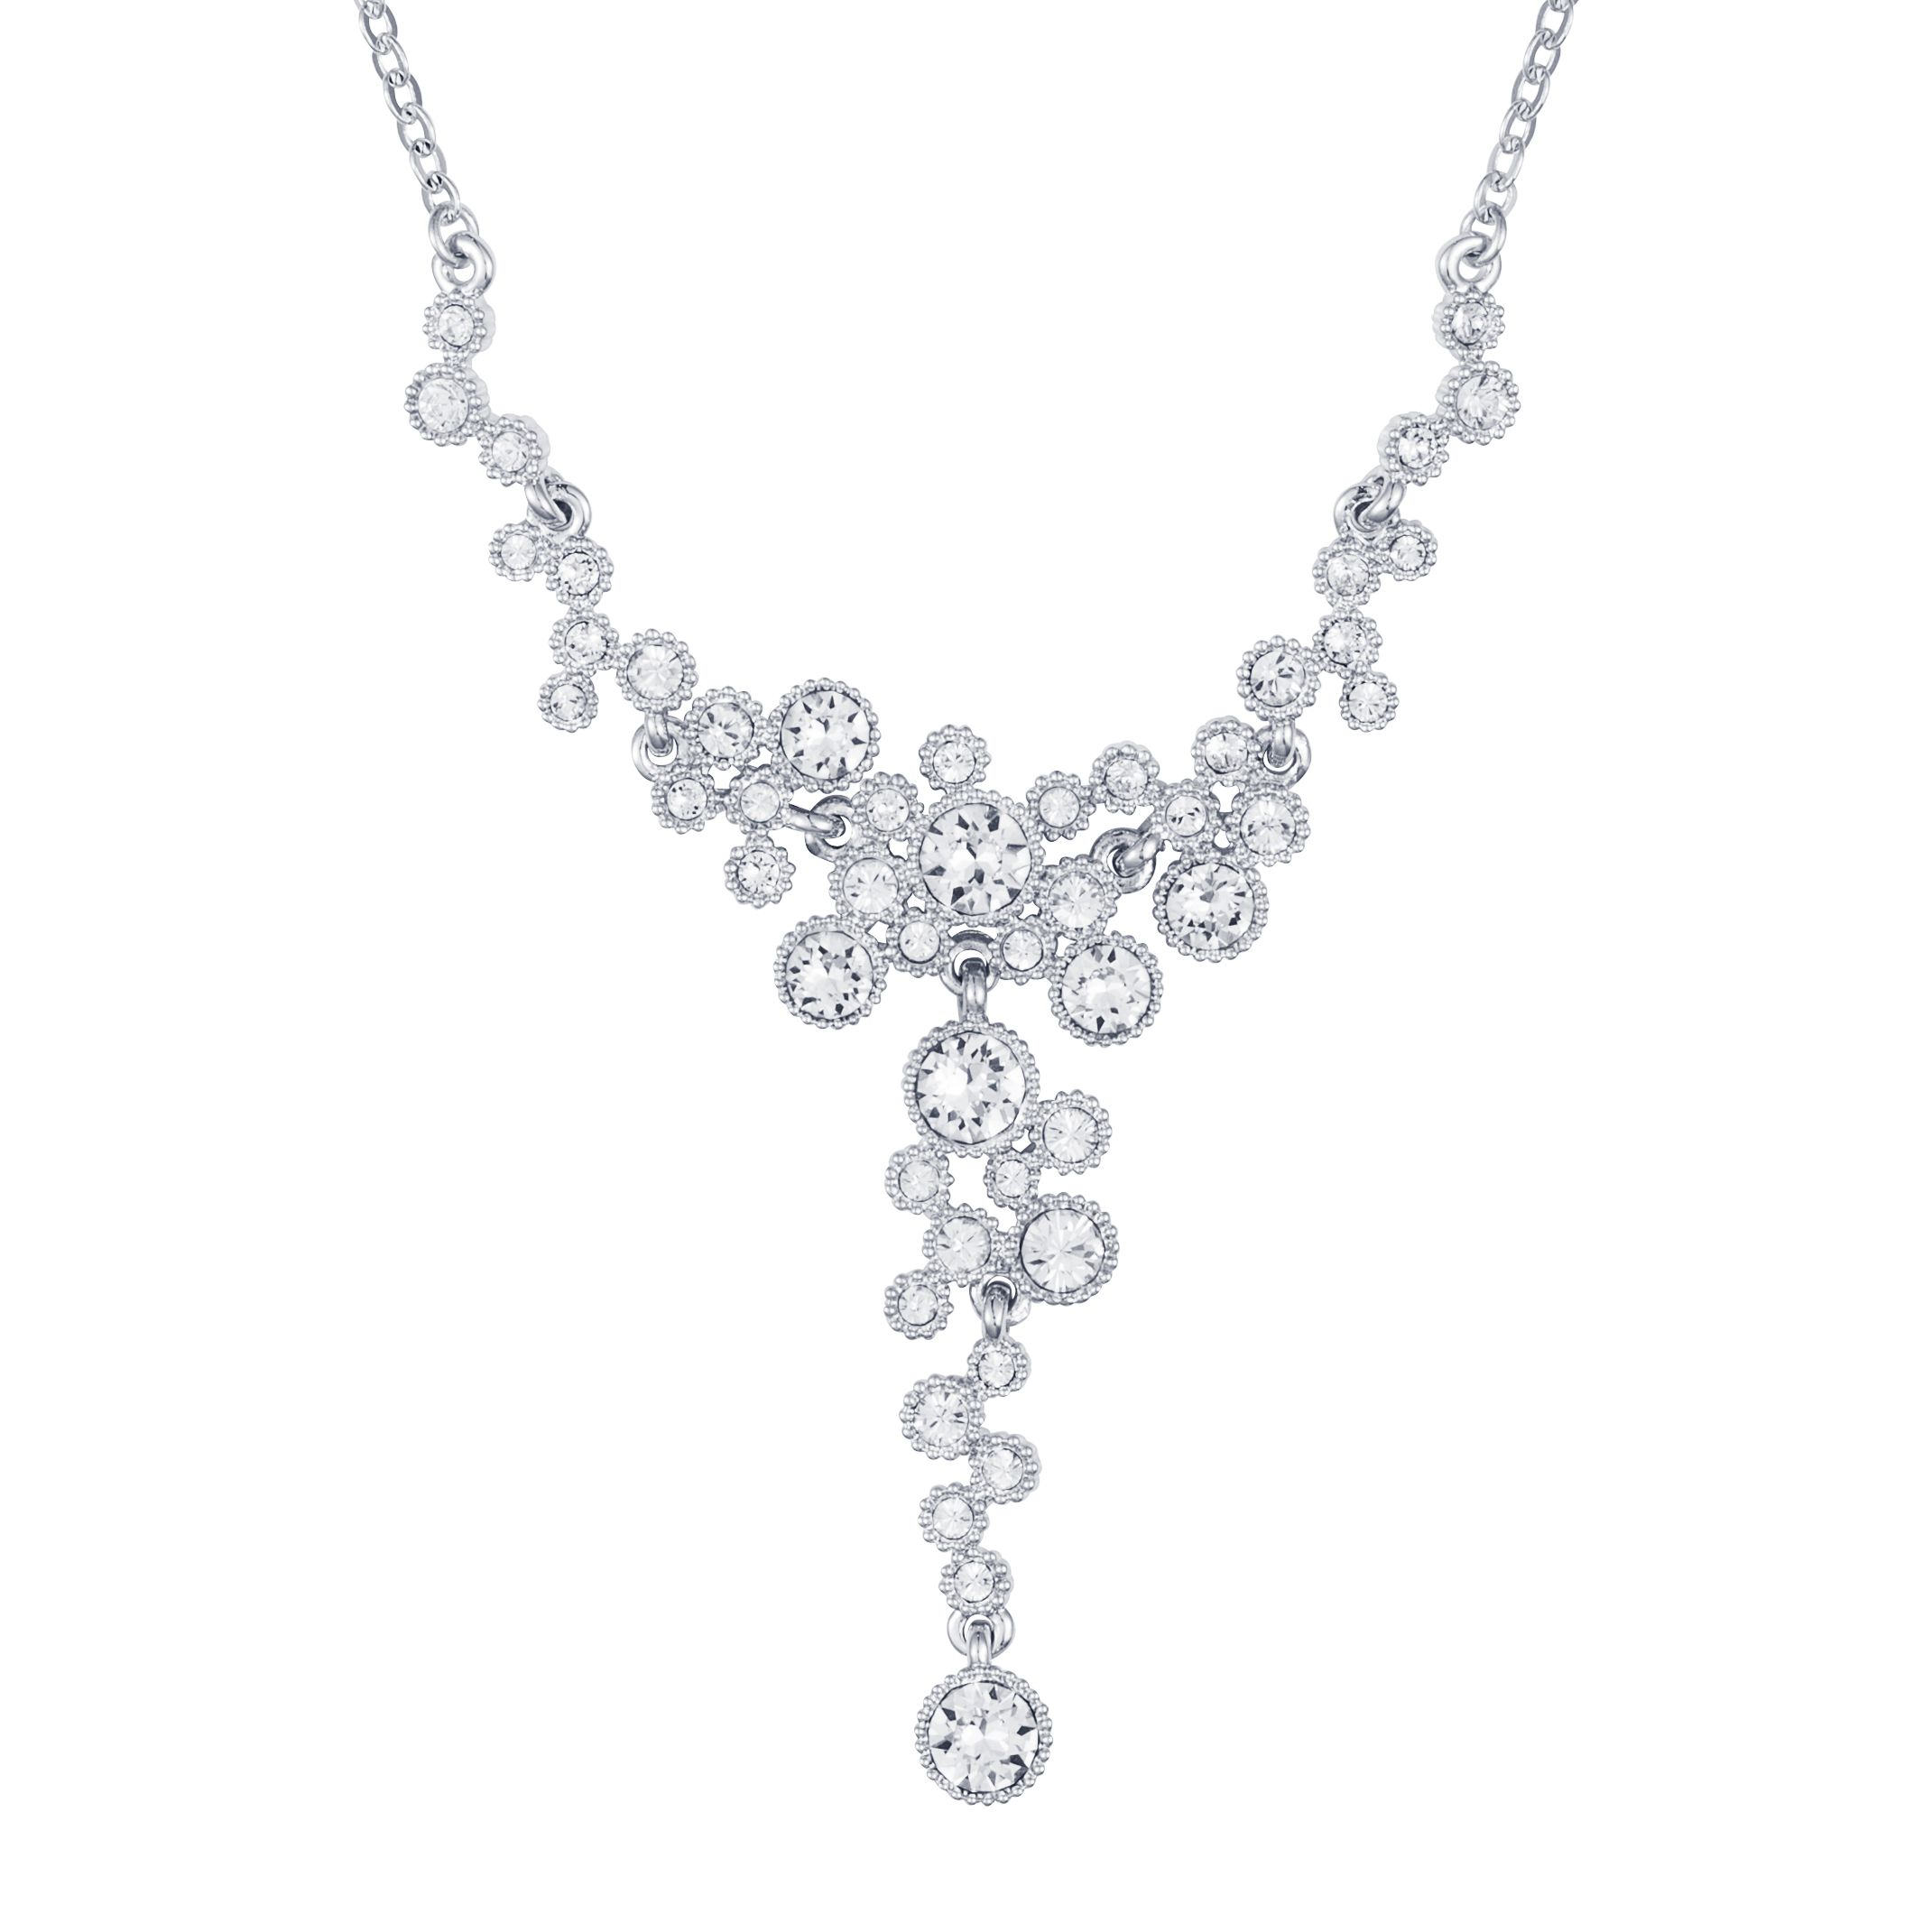 Rhodium plated titania multibubble necklace